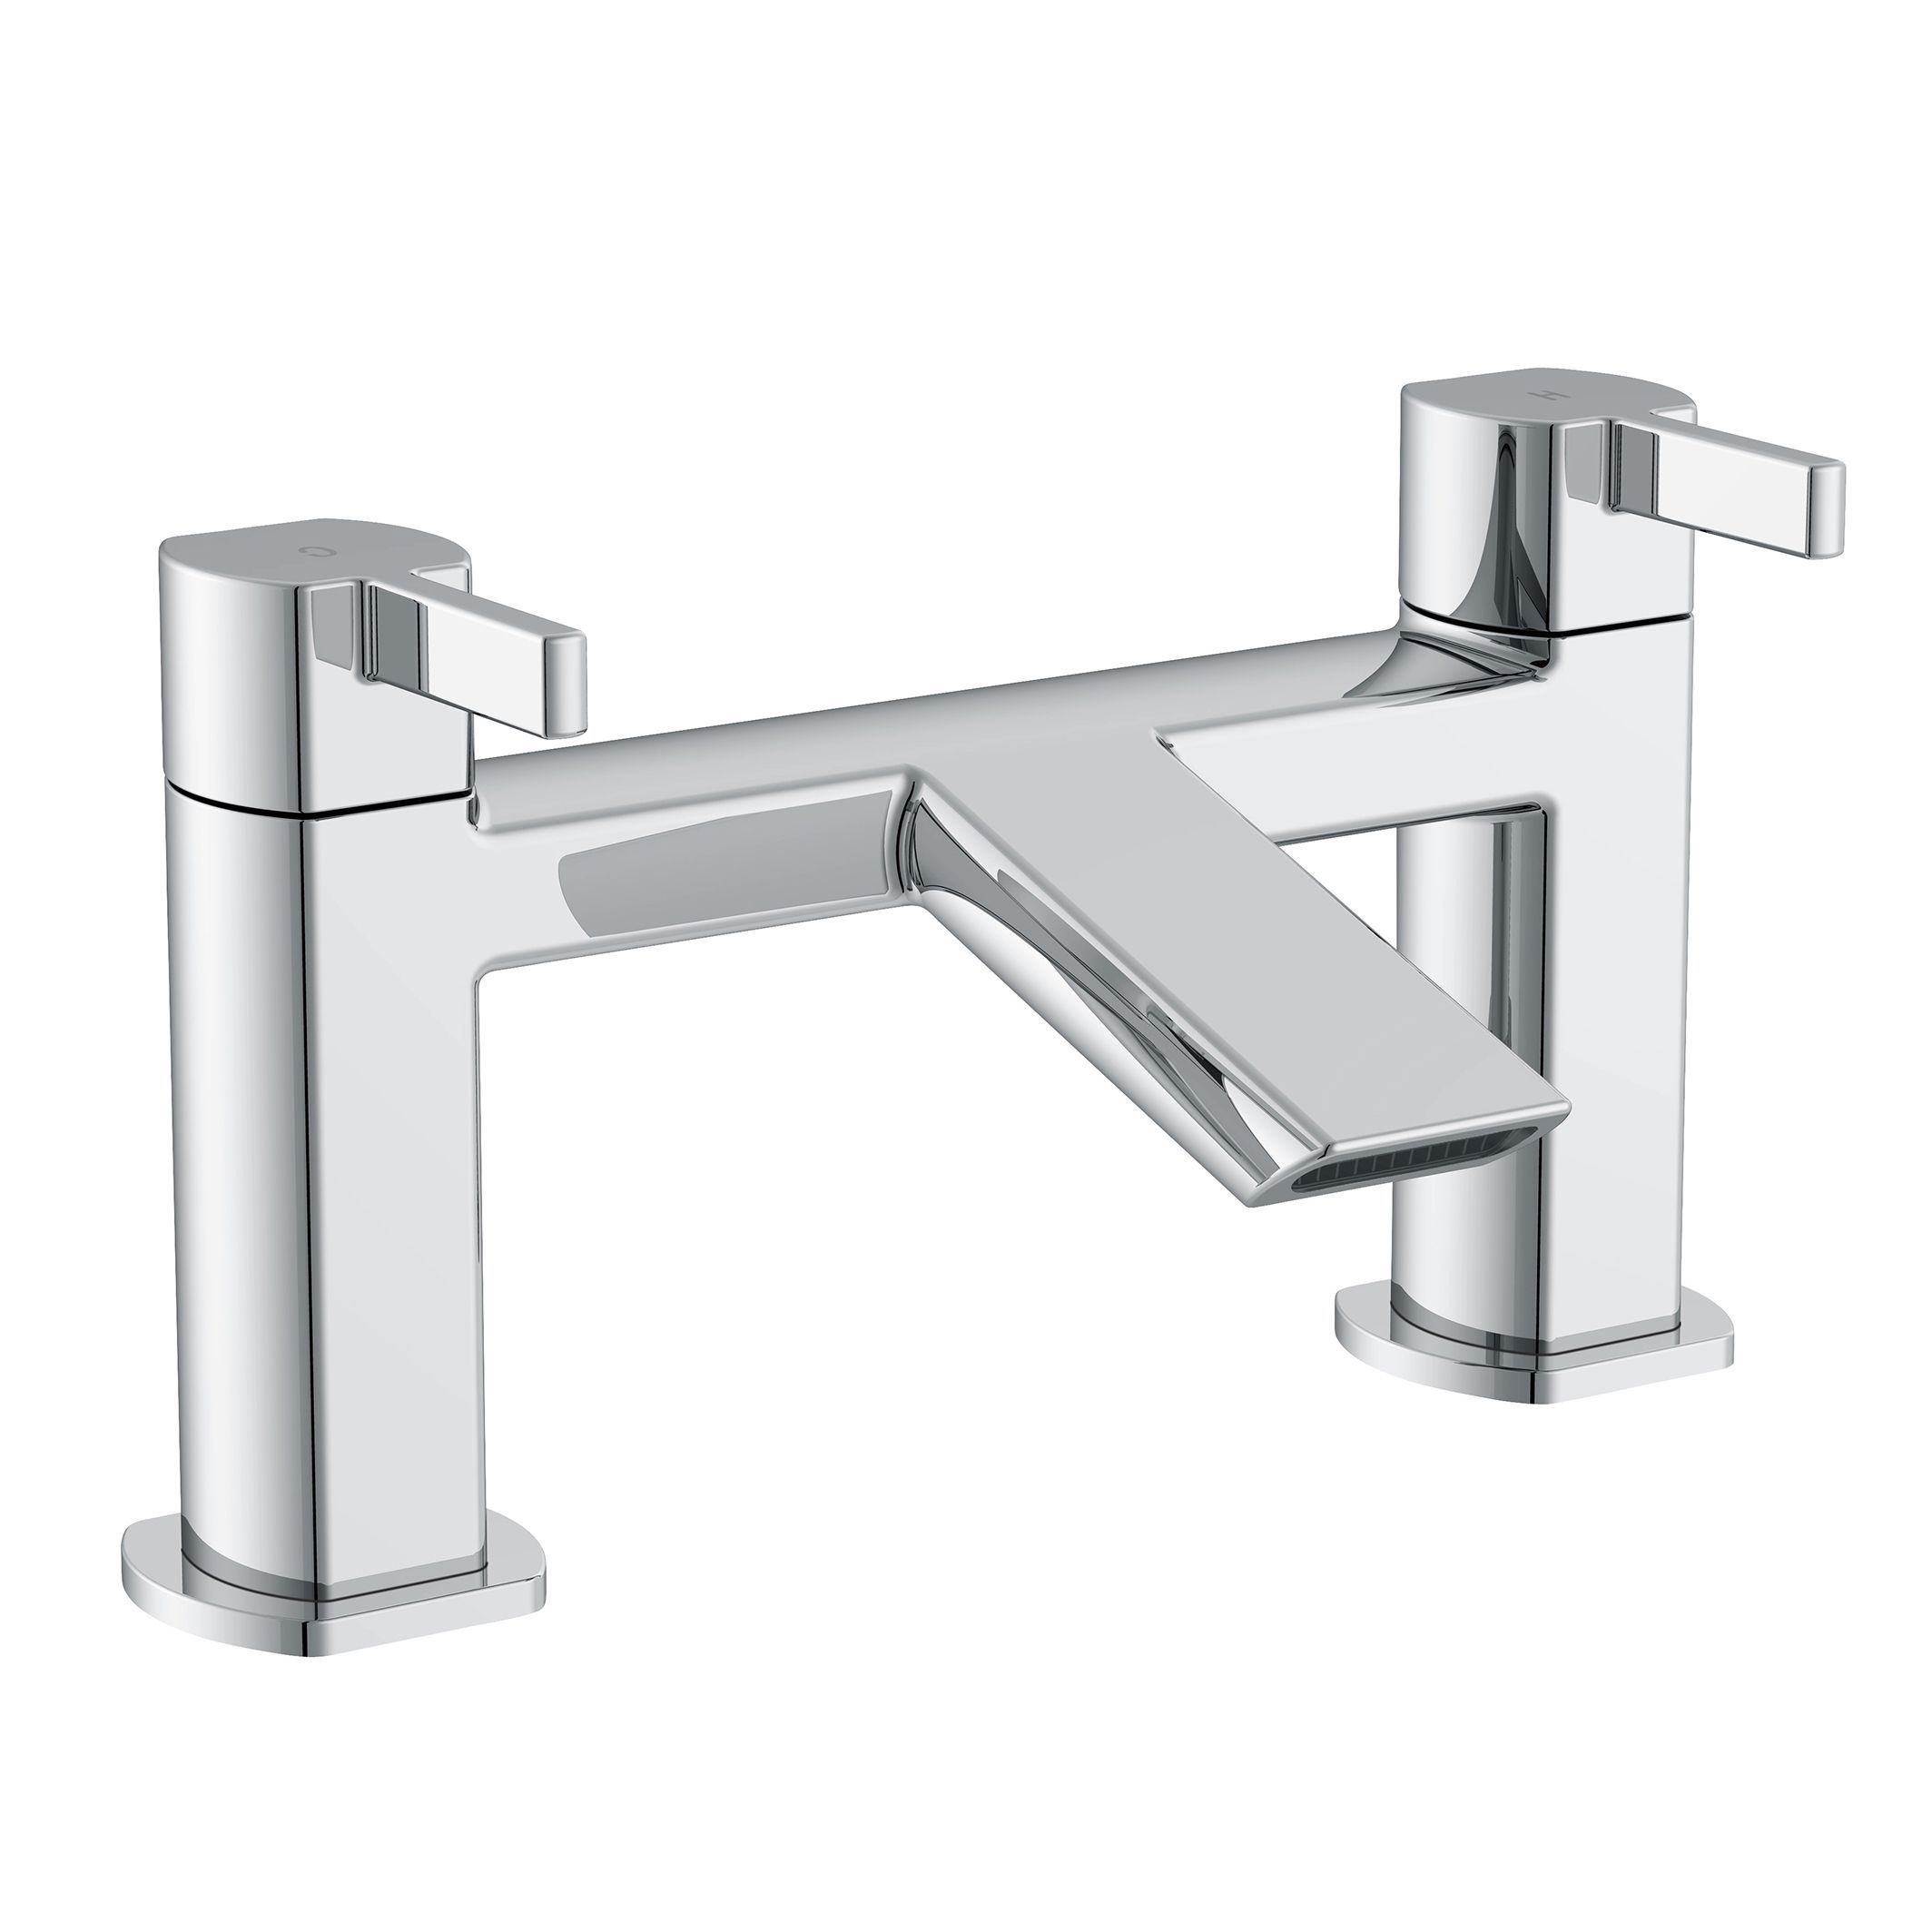 Cooke & Lewis Airlie Chrome finish Bath mixer tap ...